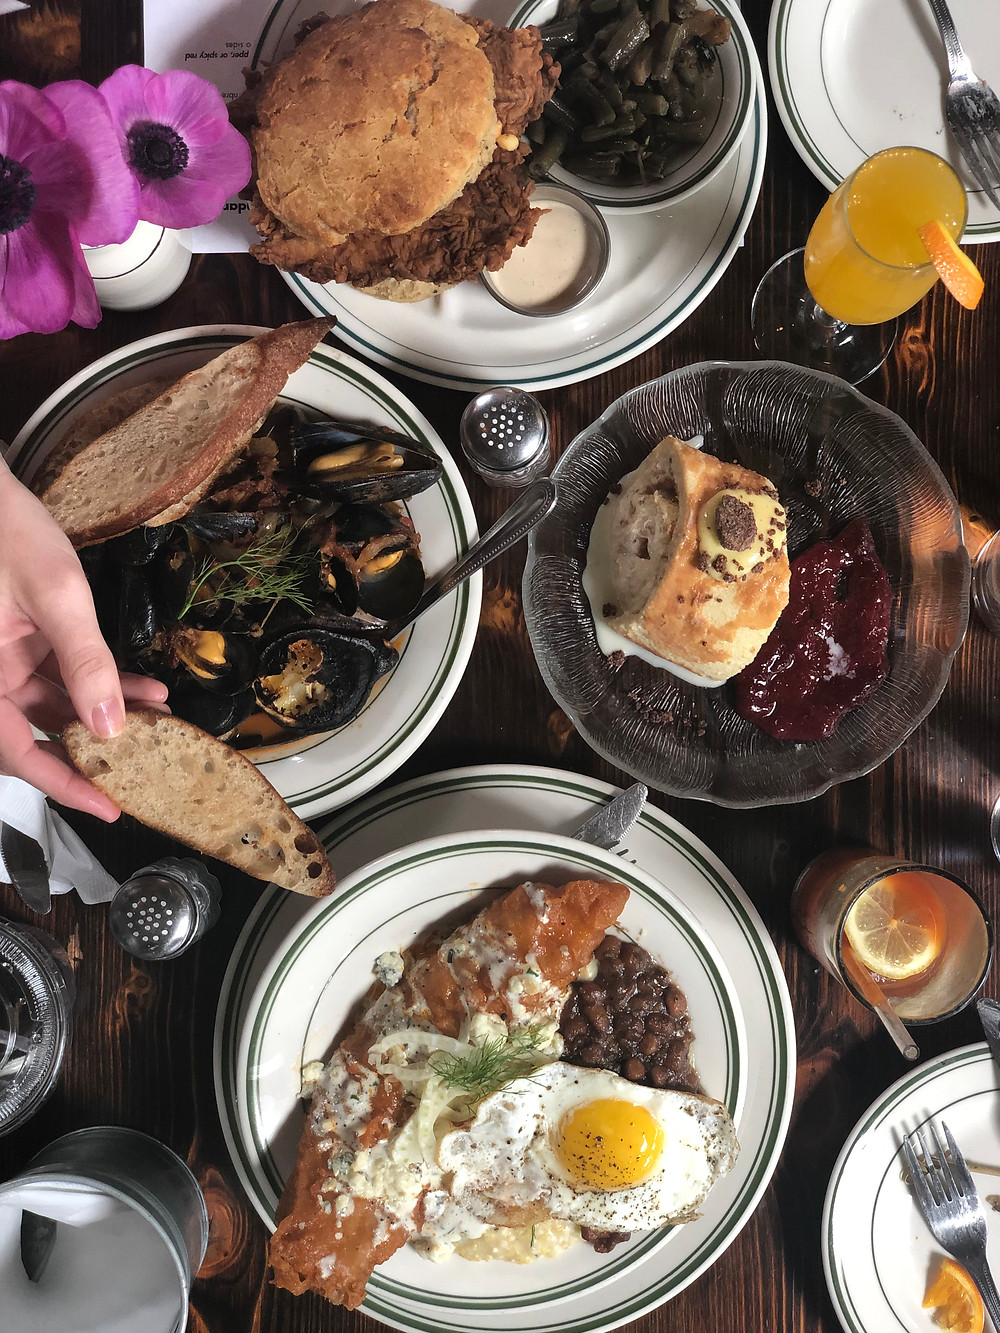 Buxton Hall Sunday Brunch Asheville: chicken biscuit, mussels, beer battered catfish, jelly roll